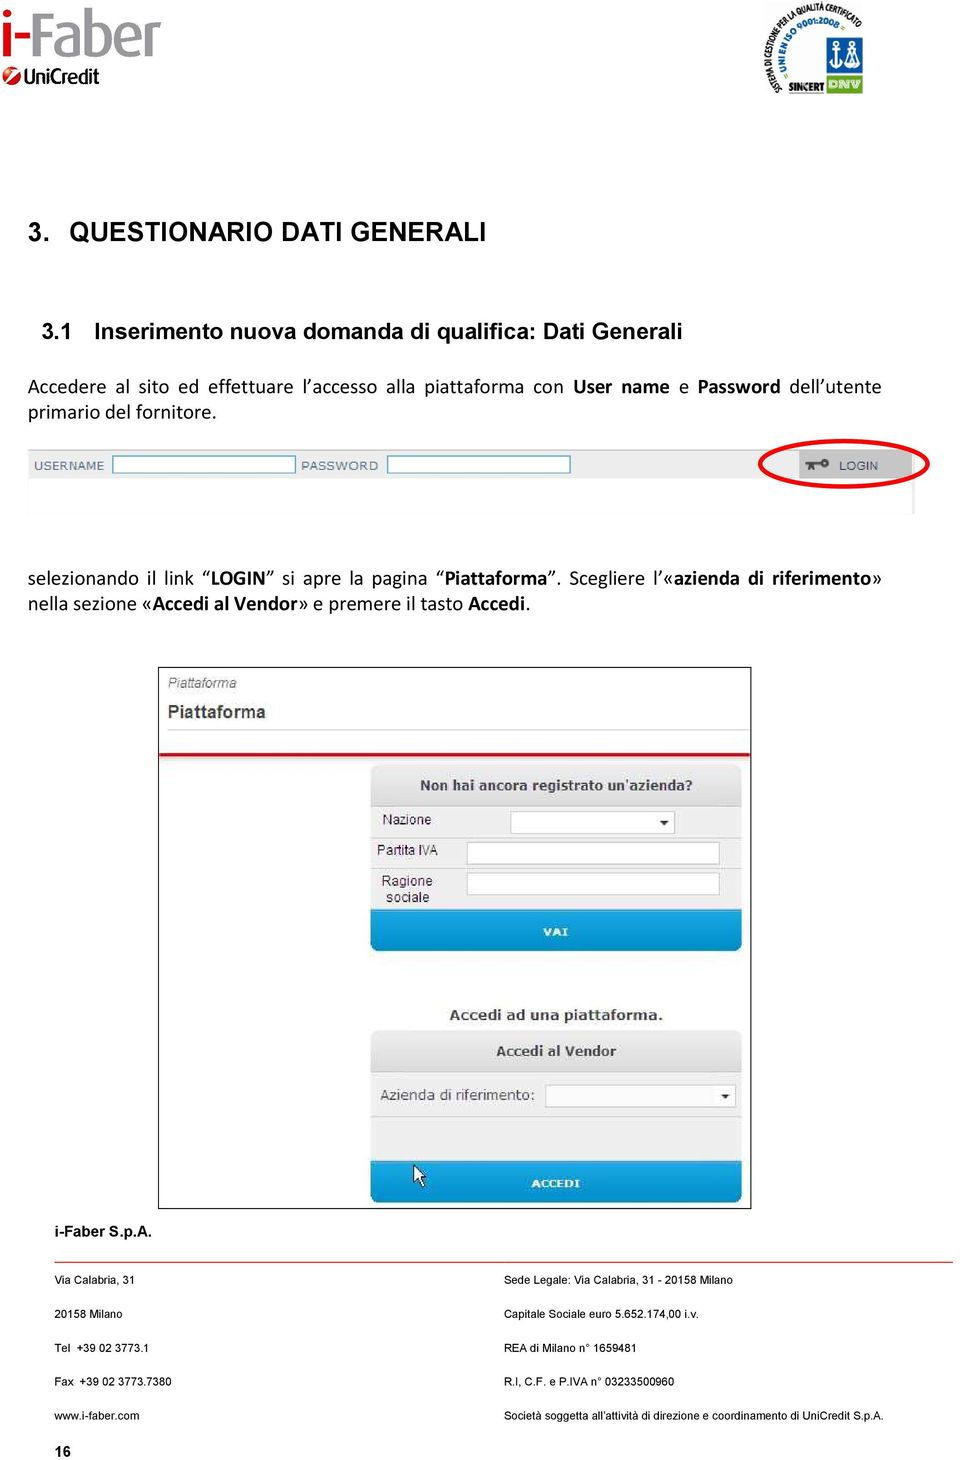 piattaforma con User name e Password dell utente primario del fornitore.